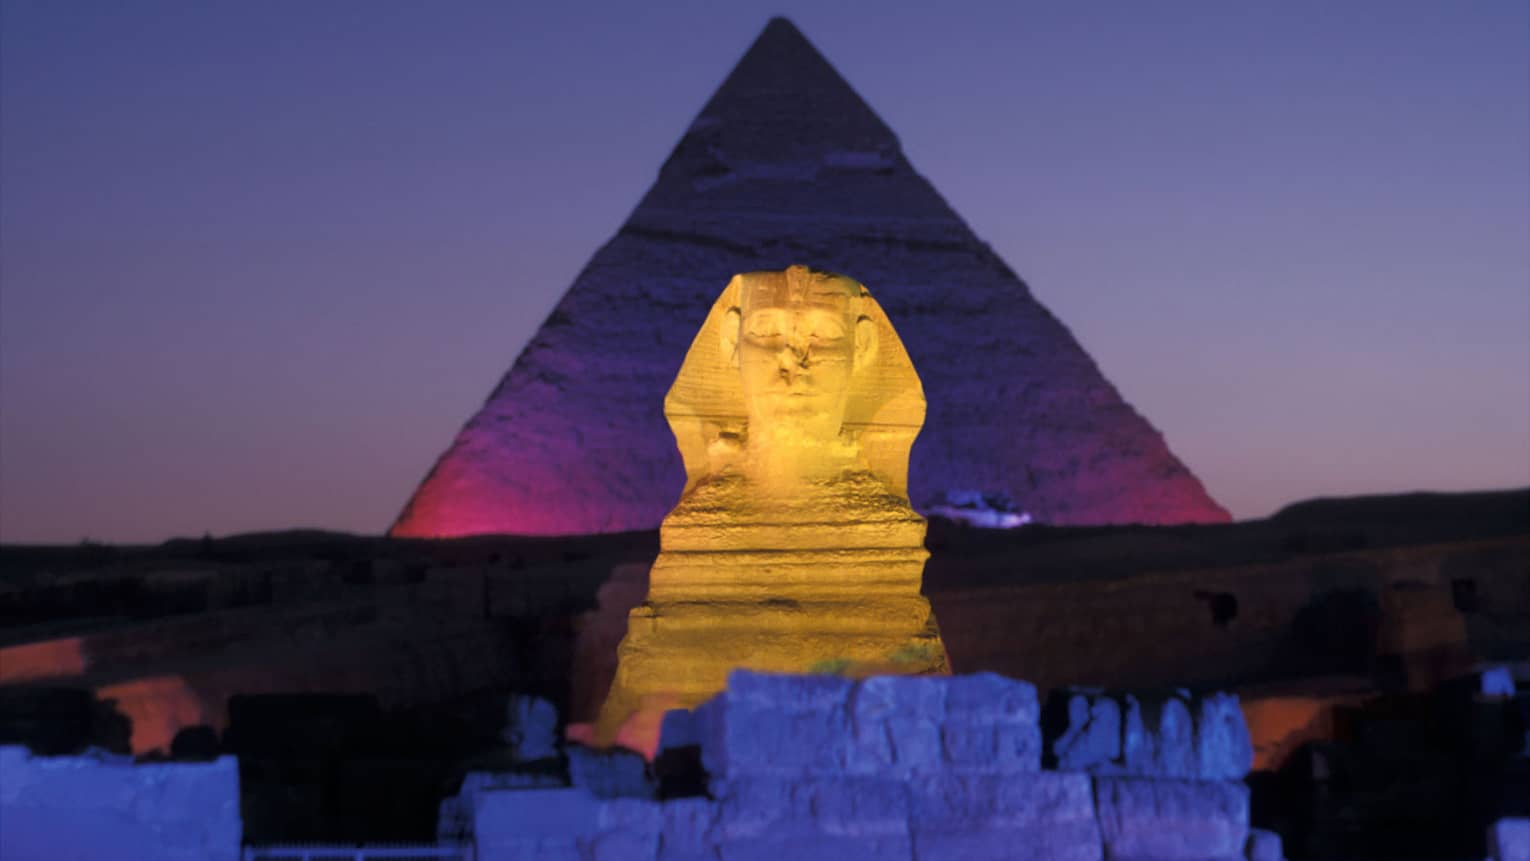 Sphinx and pyramid night light show Egypt